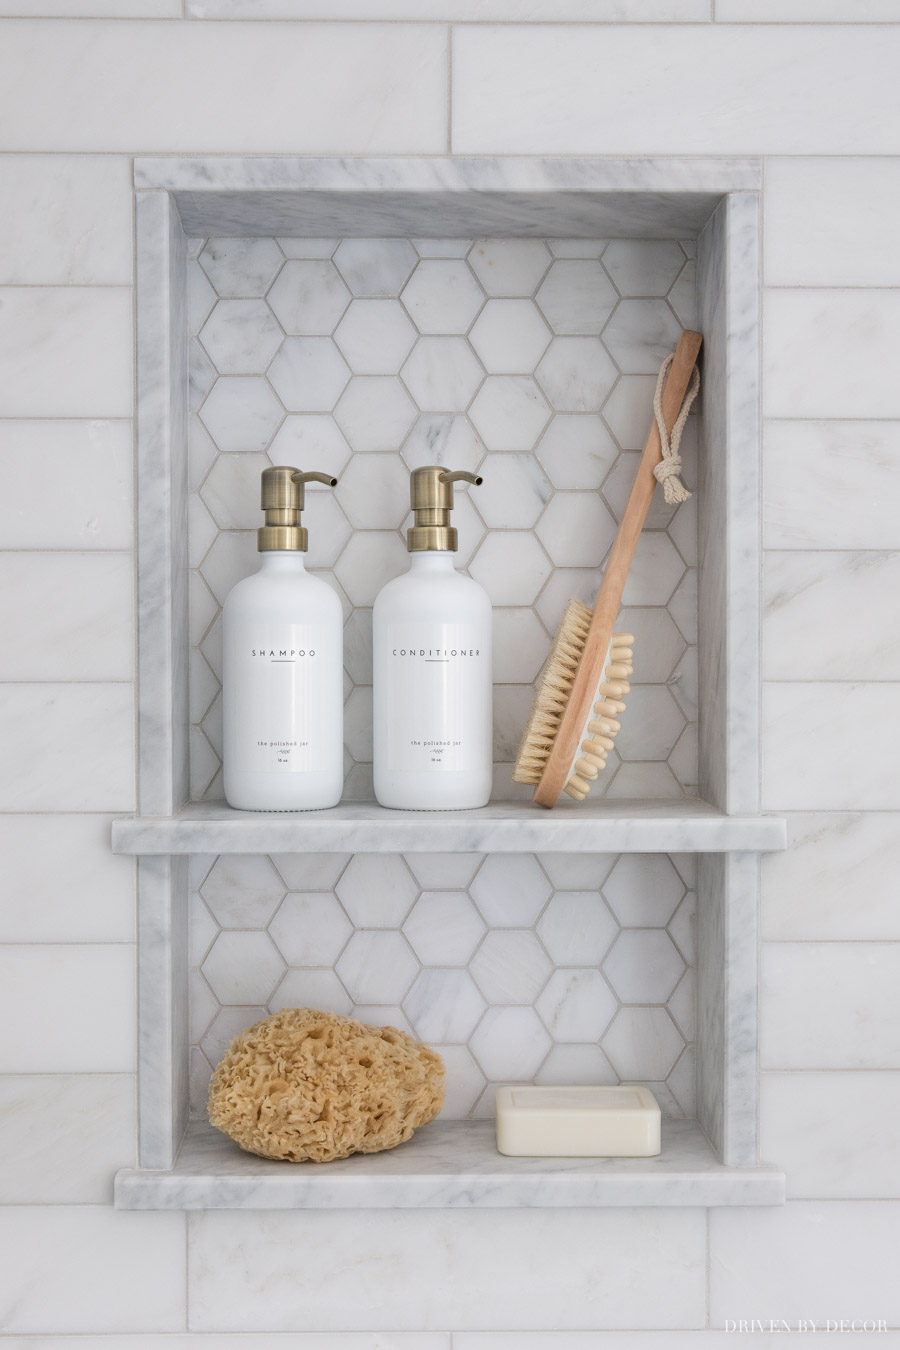 Details on shower niche height including spacing of shelves!